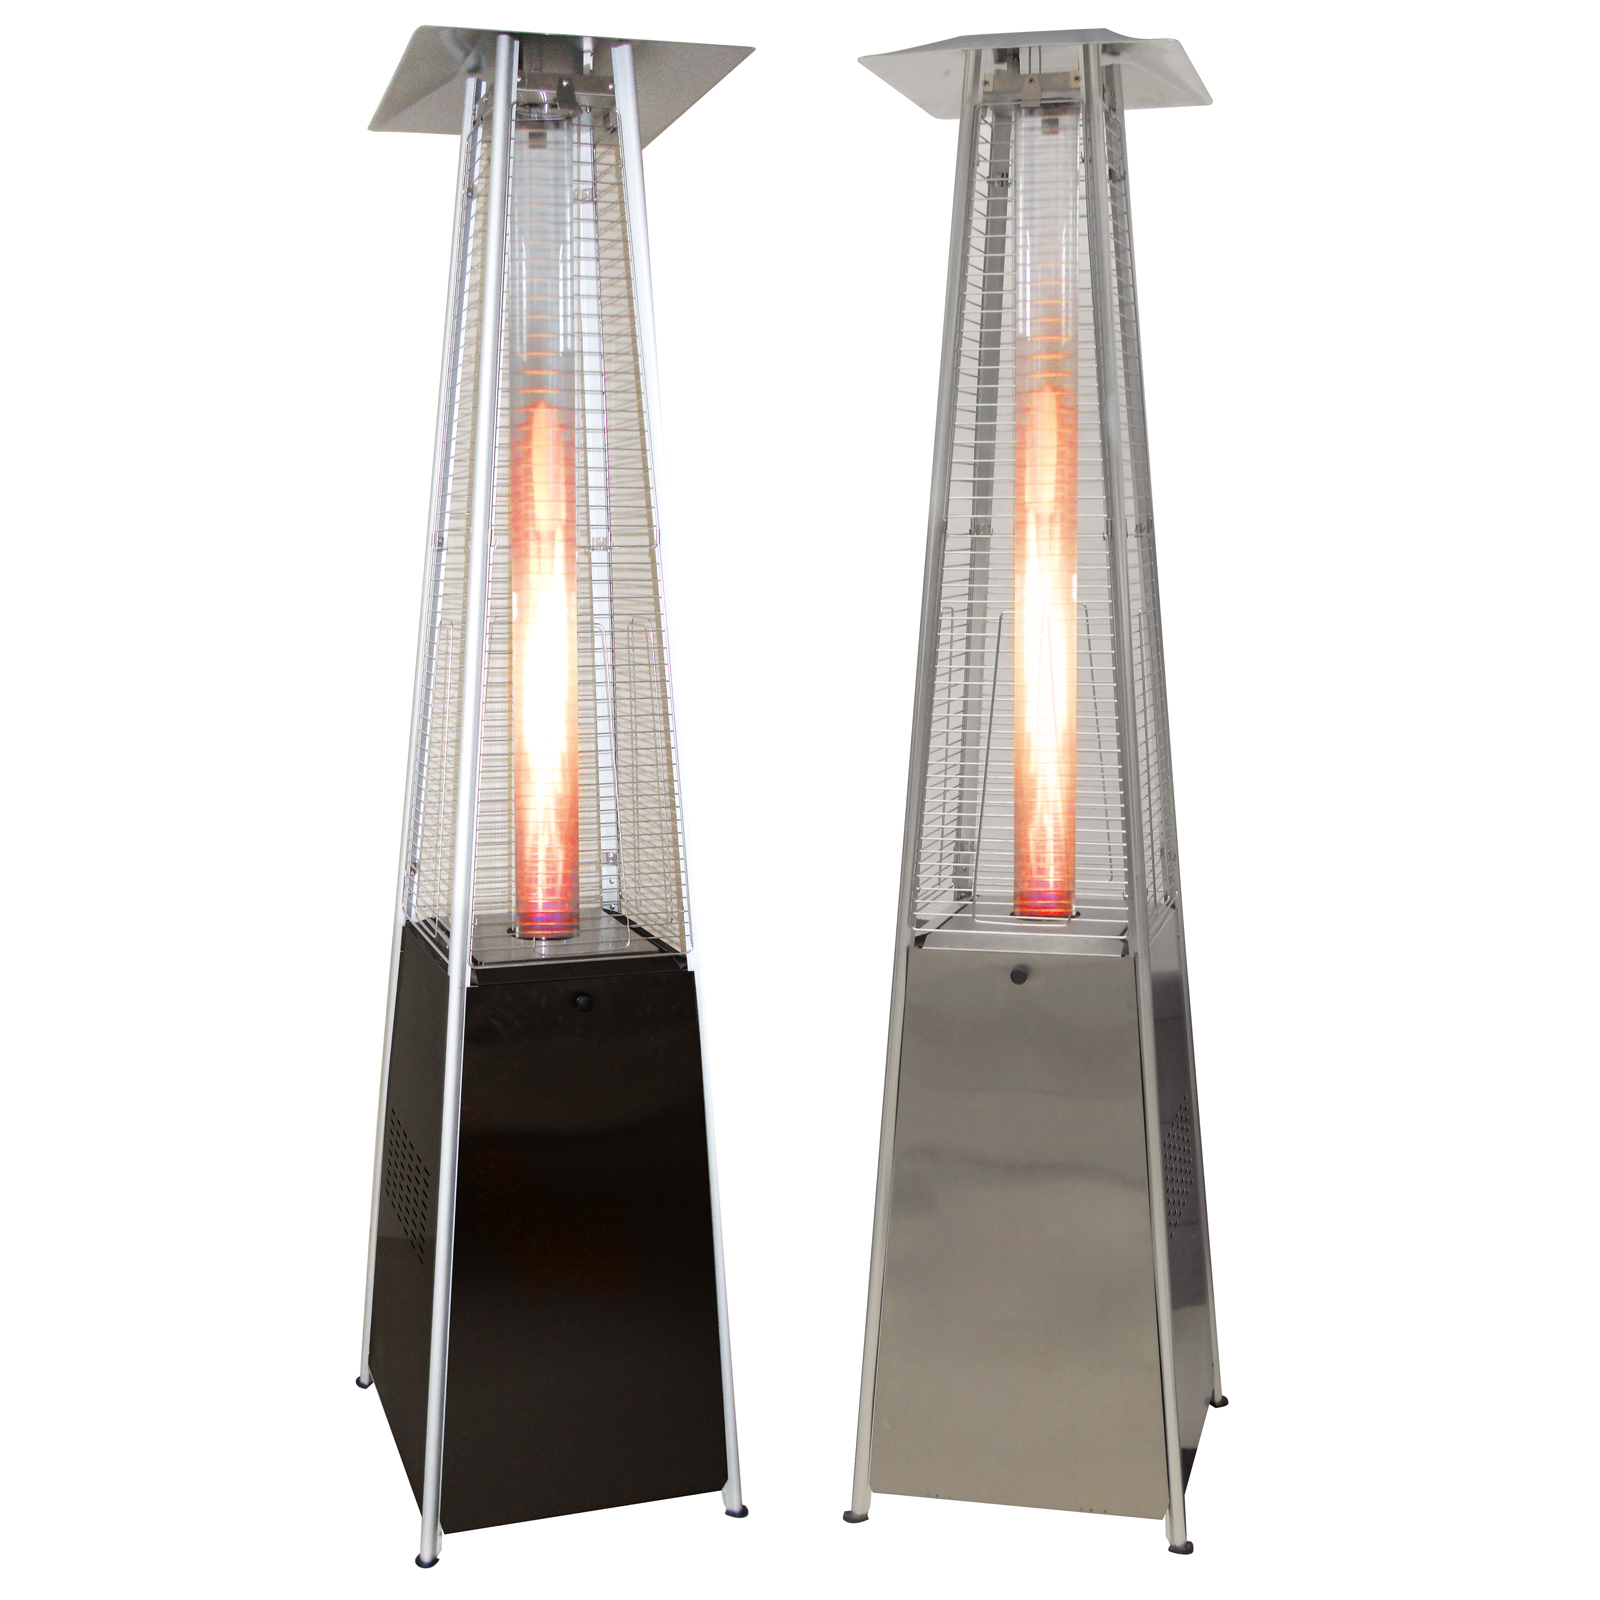 Awesome Outdoor Kerosene Heaters Deck Heaters Propane